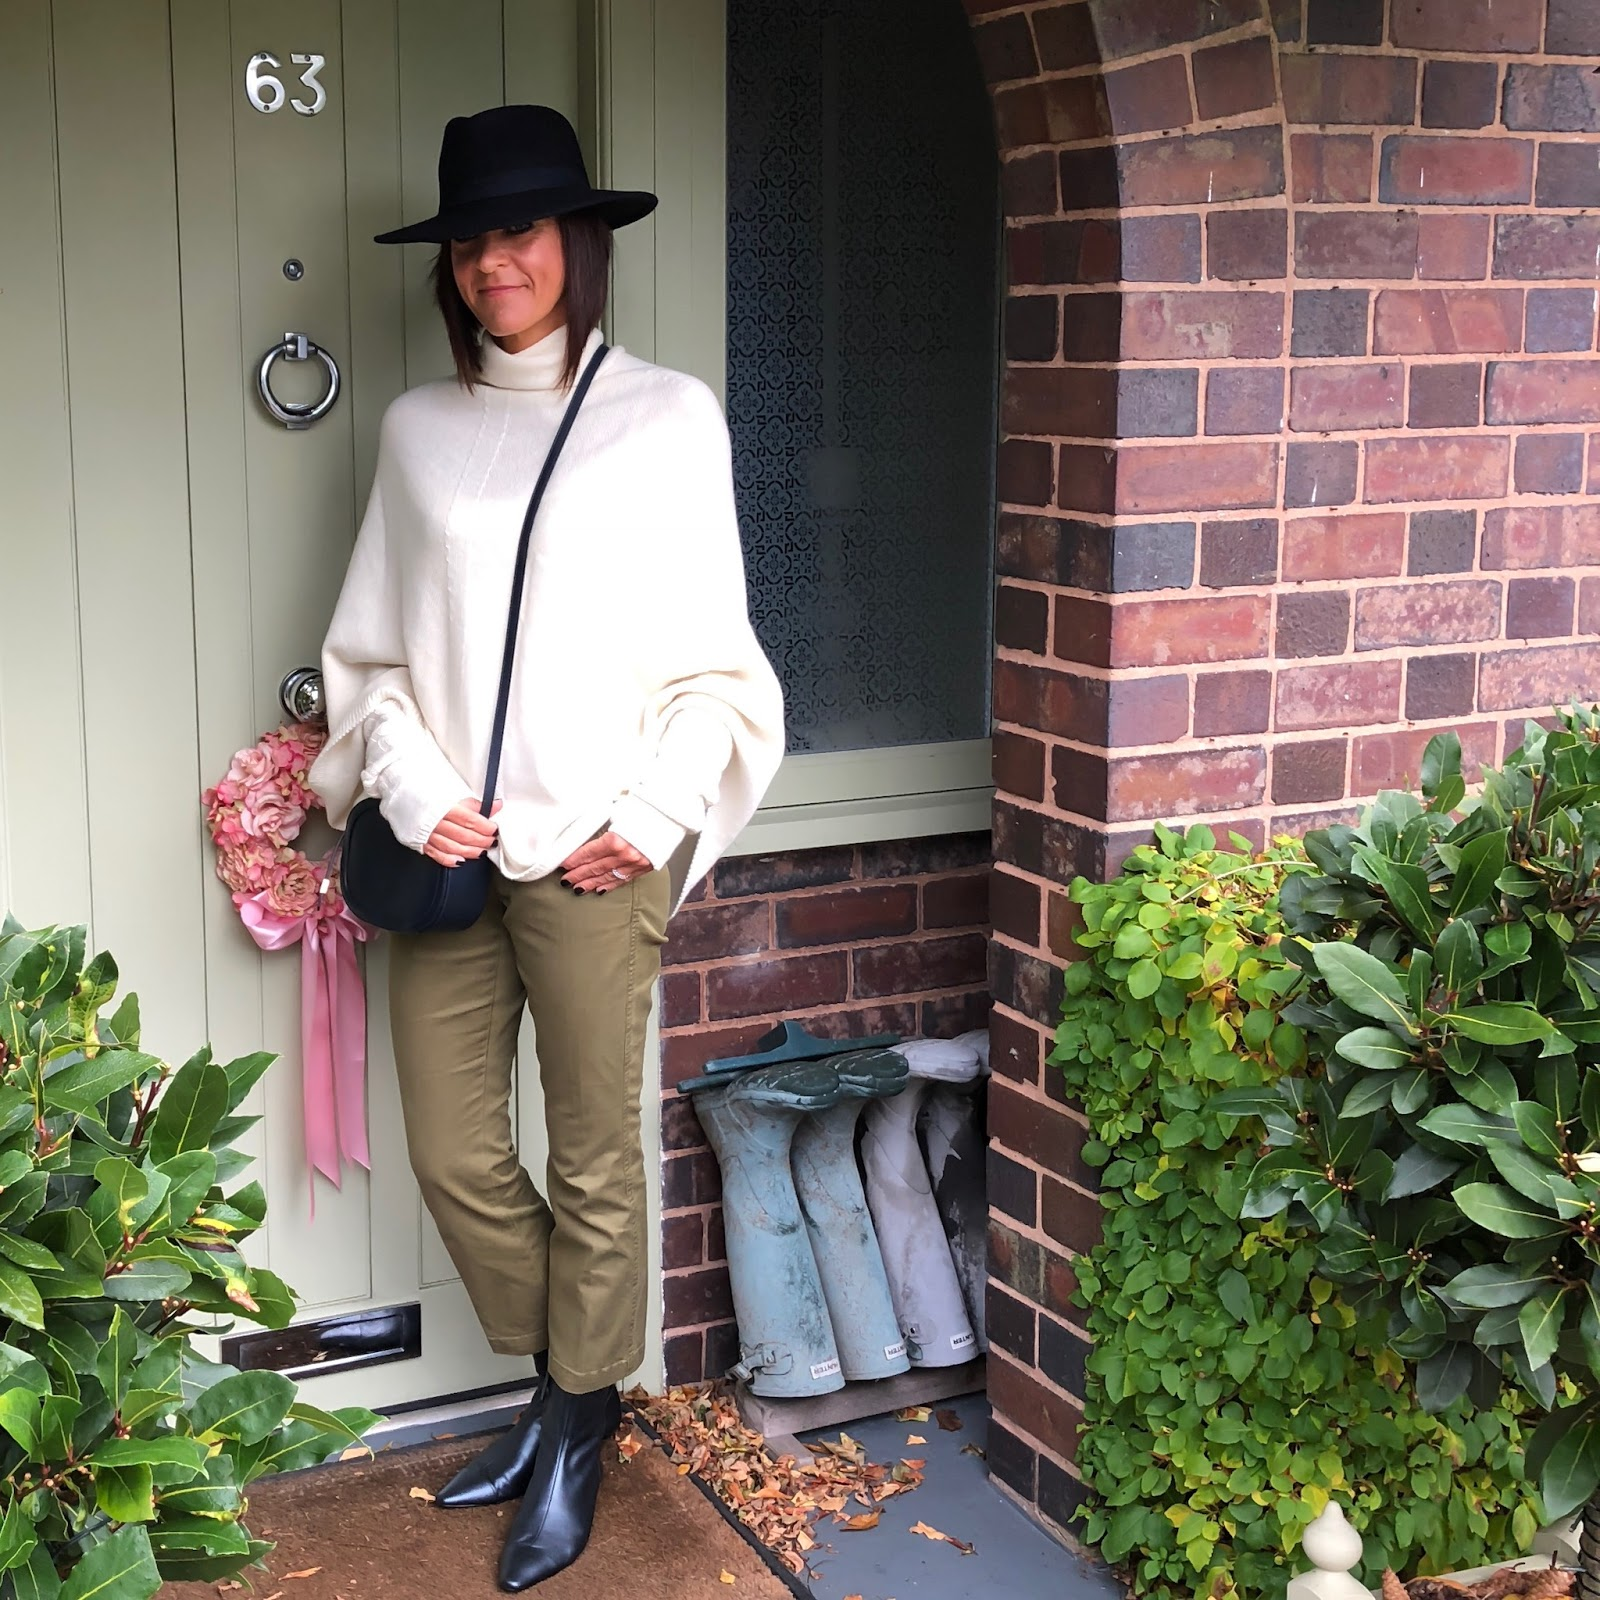 my midlife fashion, italy in cashmere cream white pure cashmere cable knit wrist warmer gloves, italy in cashmere cream white pure cashmere roll neck poncho cape, zara sock boot kitten heel ankle boots, iris and ink leather shoulder bag, j crew sammie cropped kick flare chinos, hobbs navy fedora felt hat